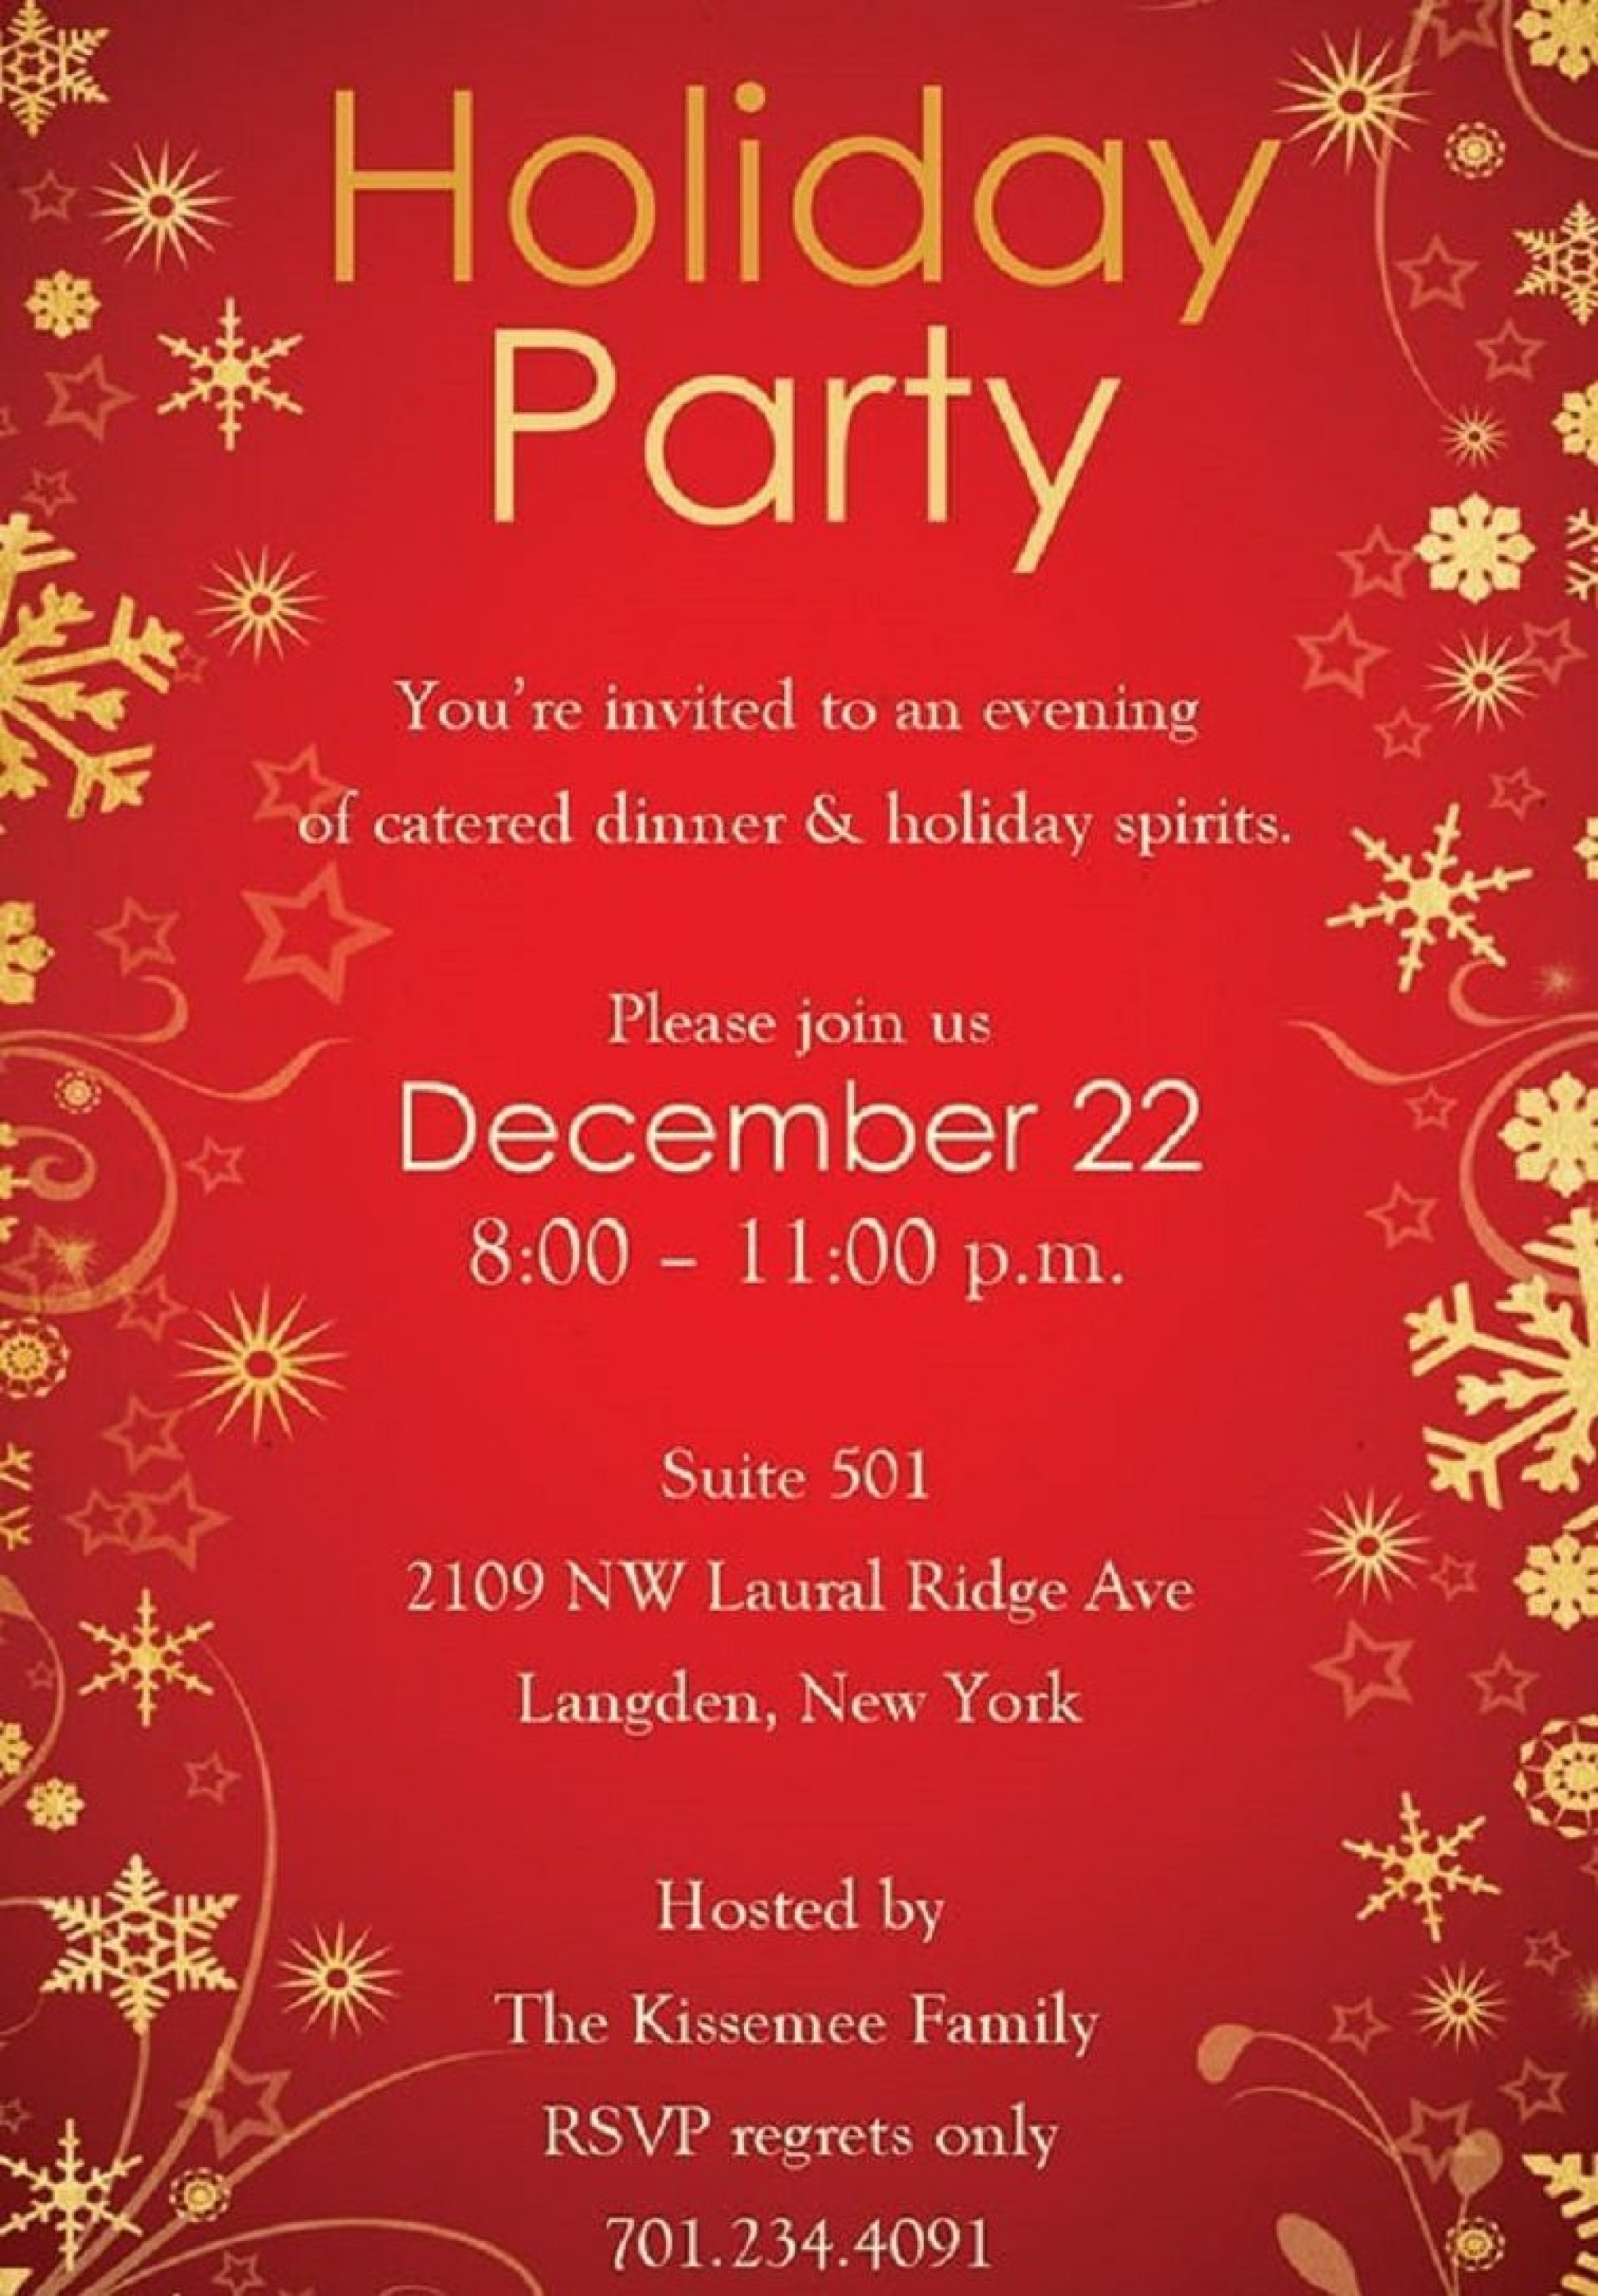 001 Exceptional Free Holiday Party Invitation Template For Word Highest Clarity 1920